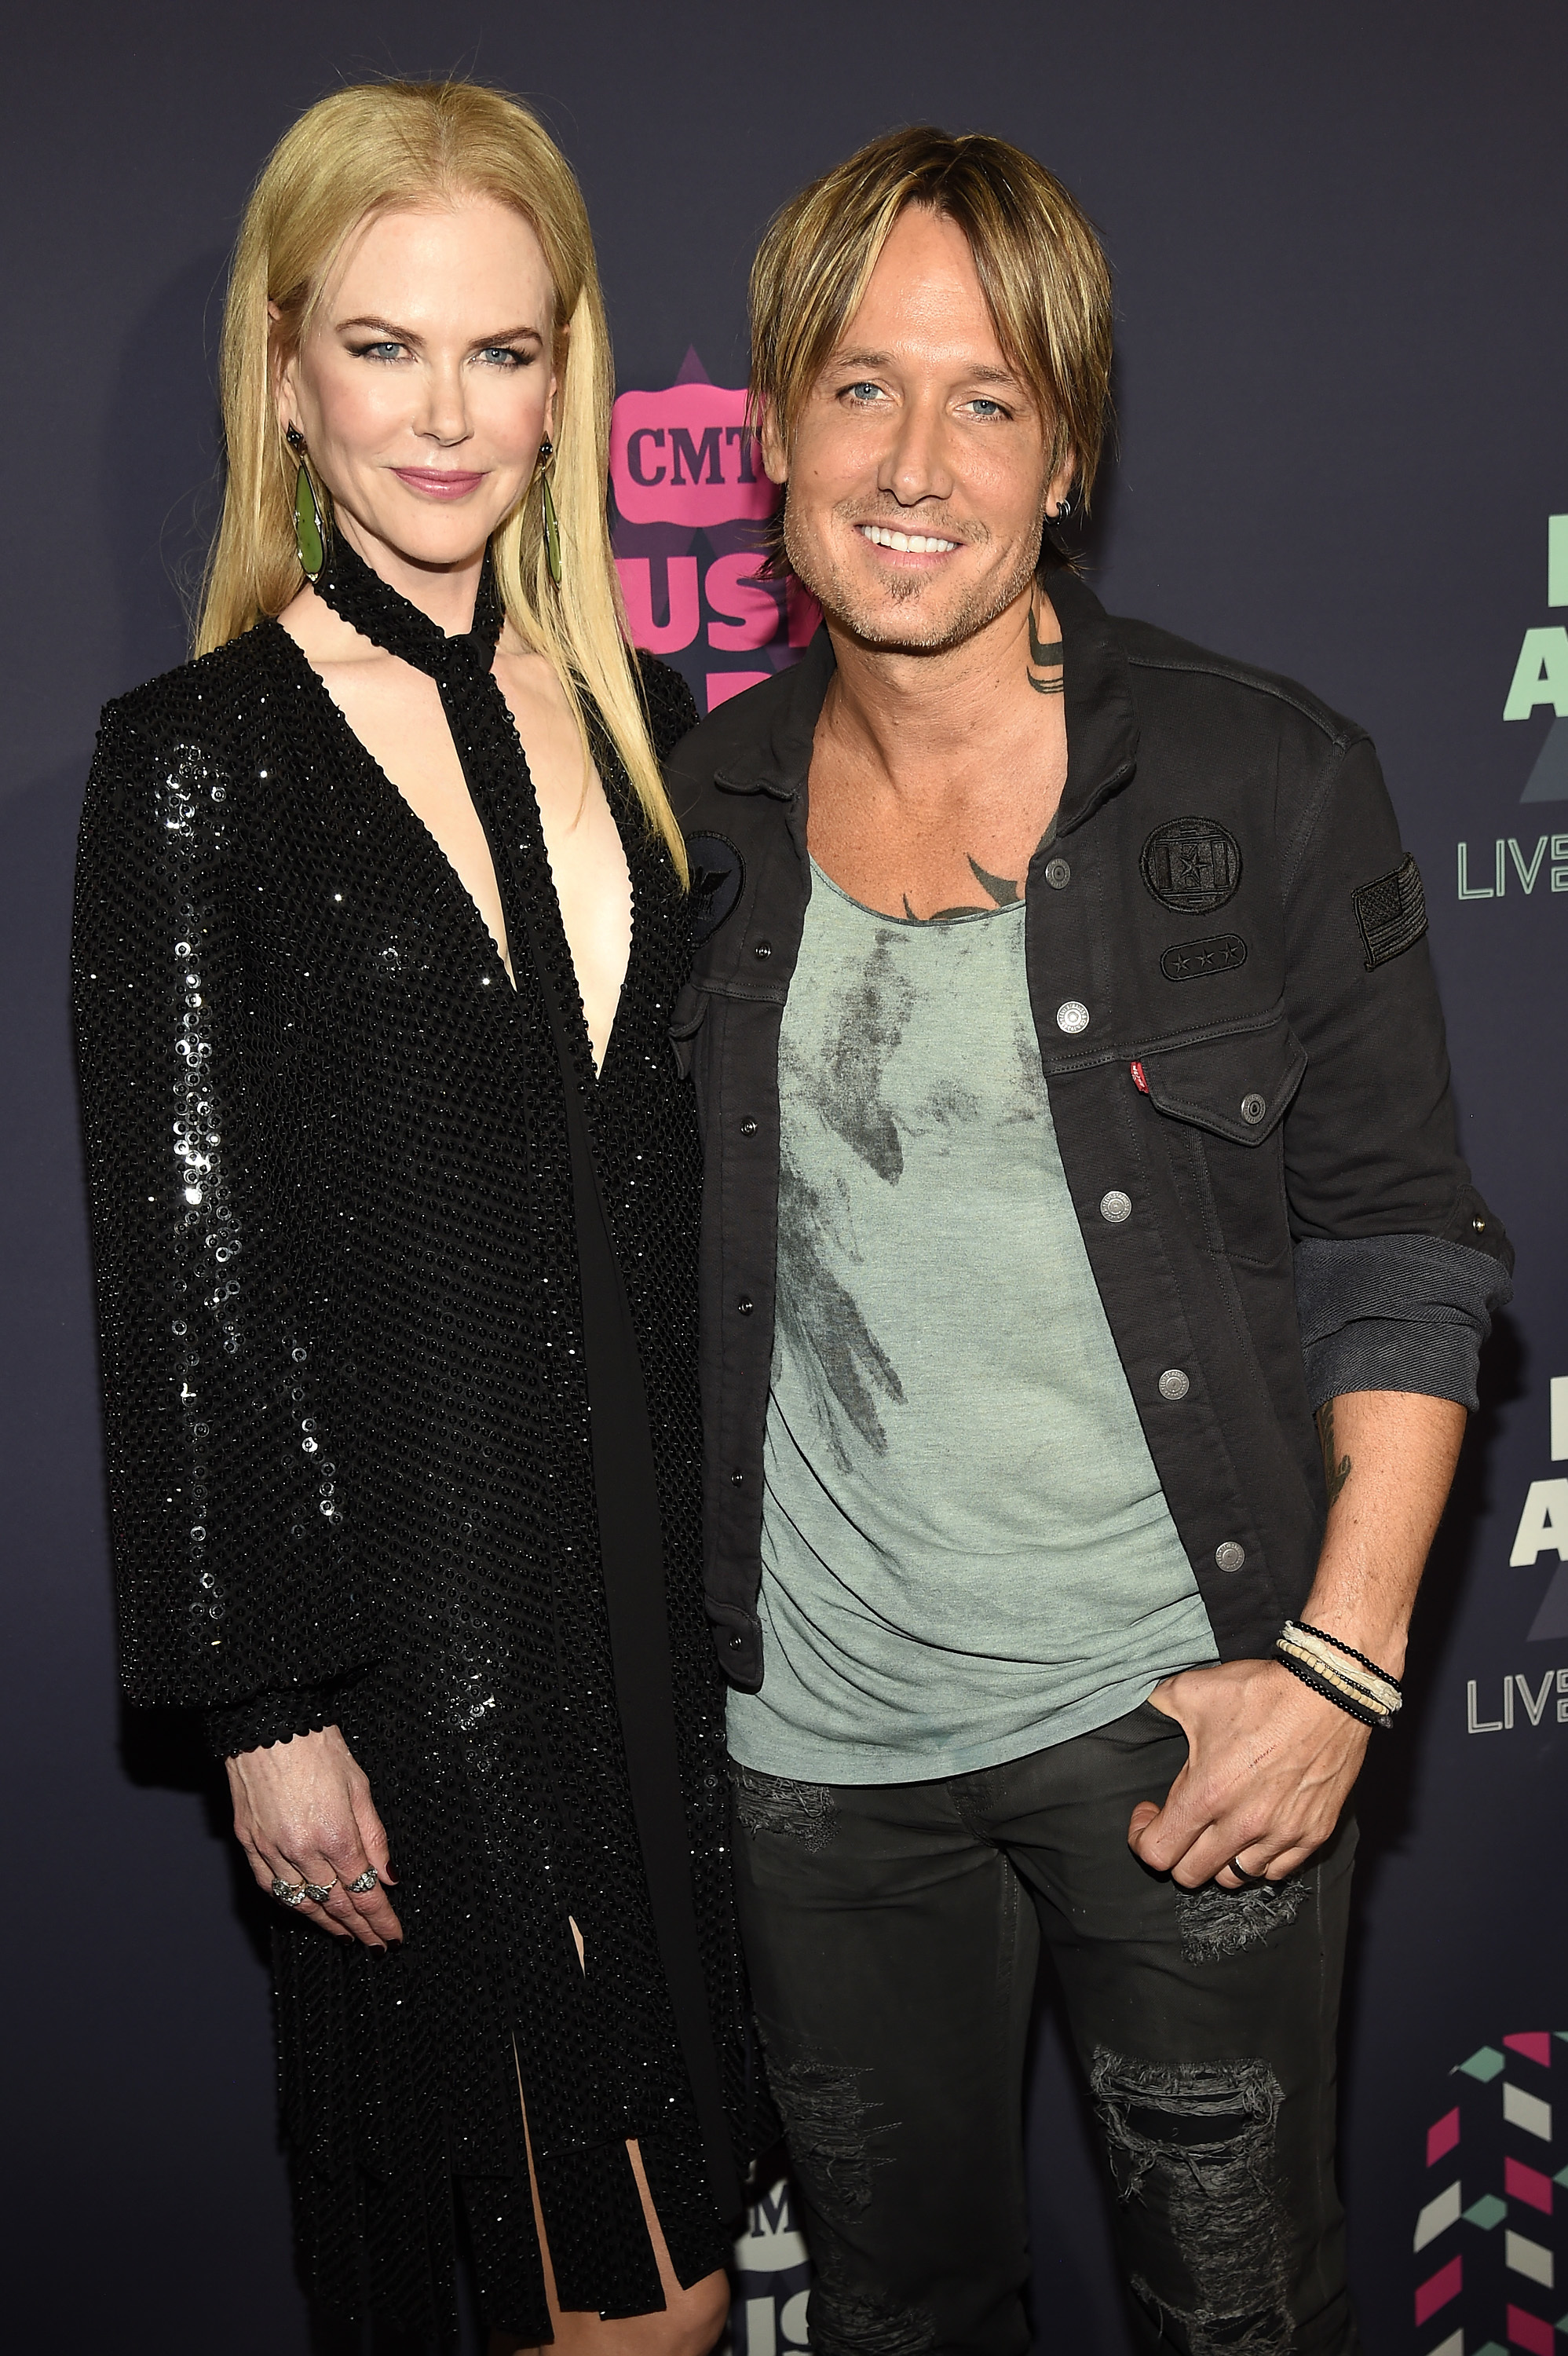 Keith Urban reveals the secret to his happy marriage